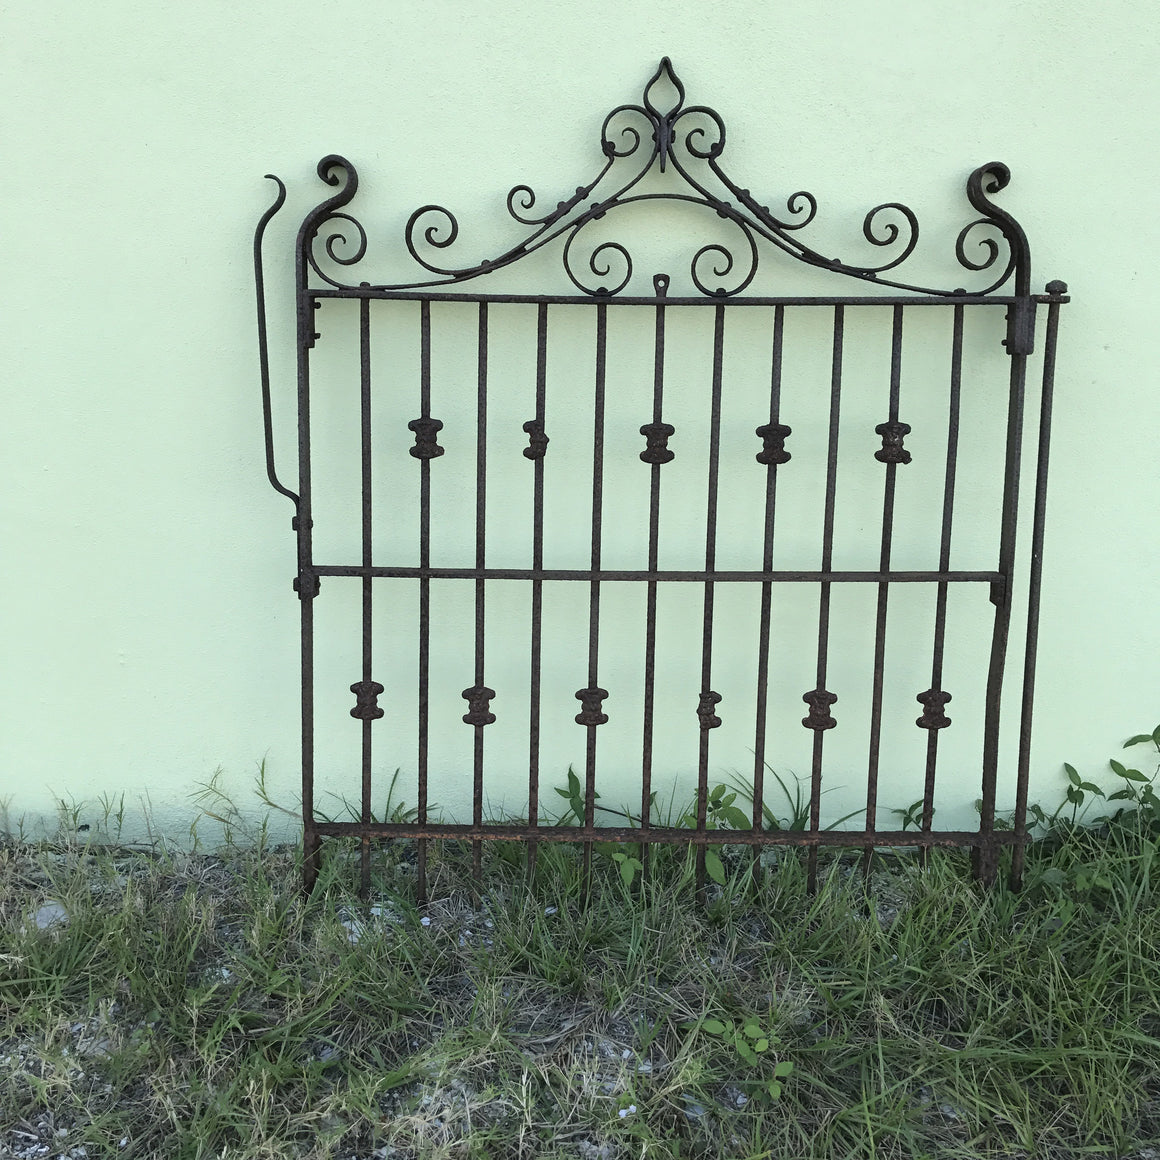 Antique Ornamental  Wrought Iron Gate - VINTAGE JOURNEY MARKET - Upcycling & Restoration